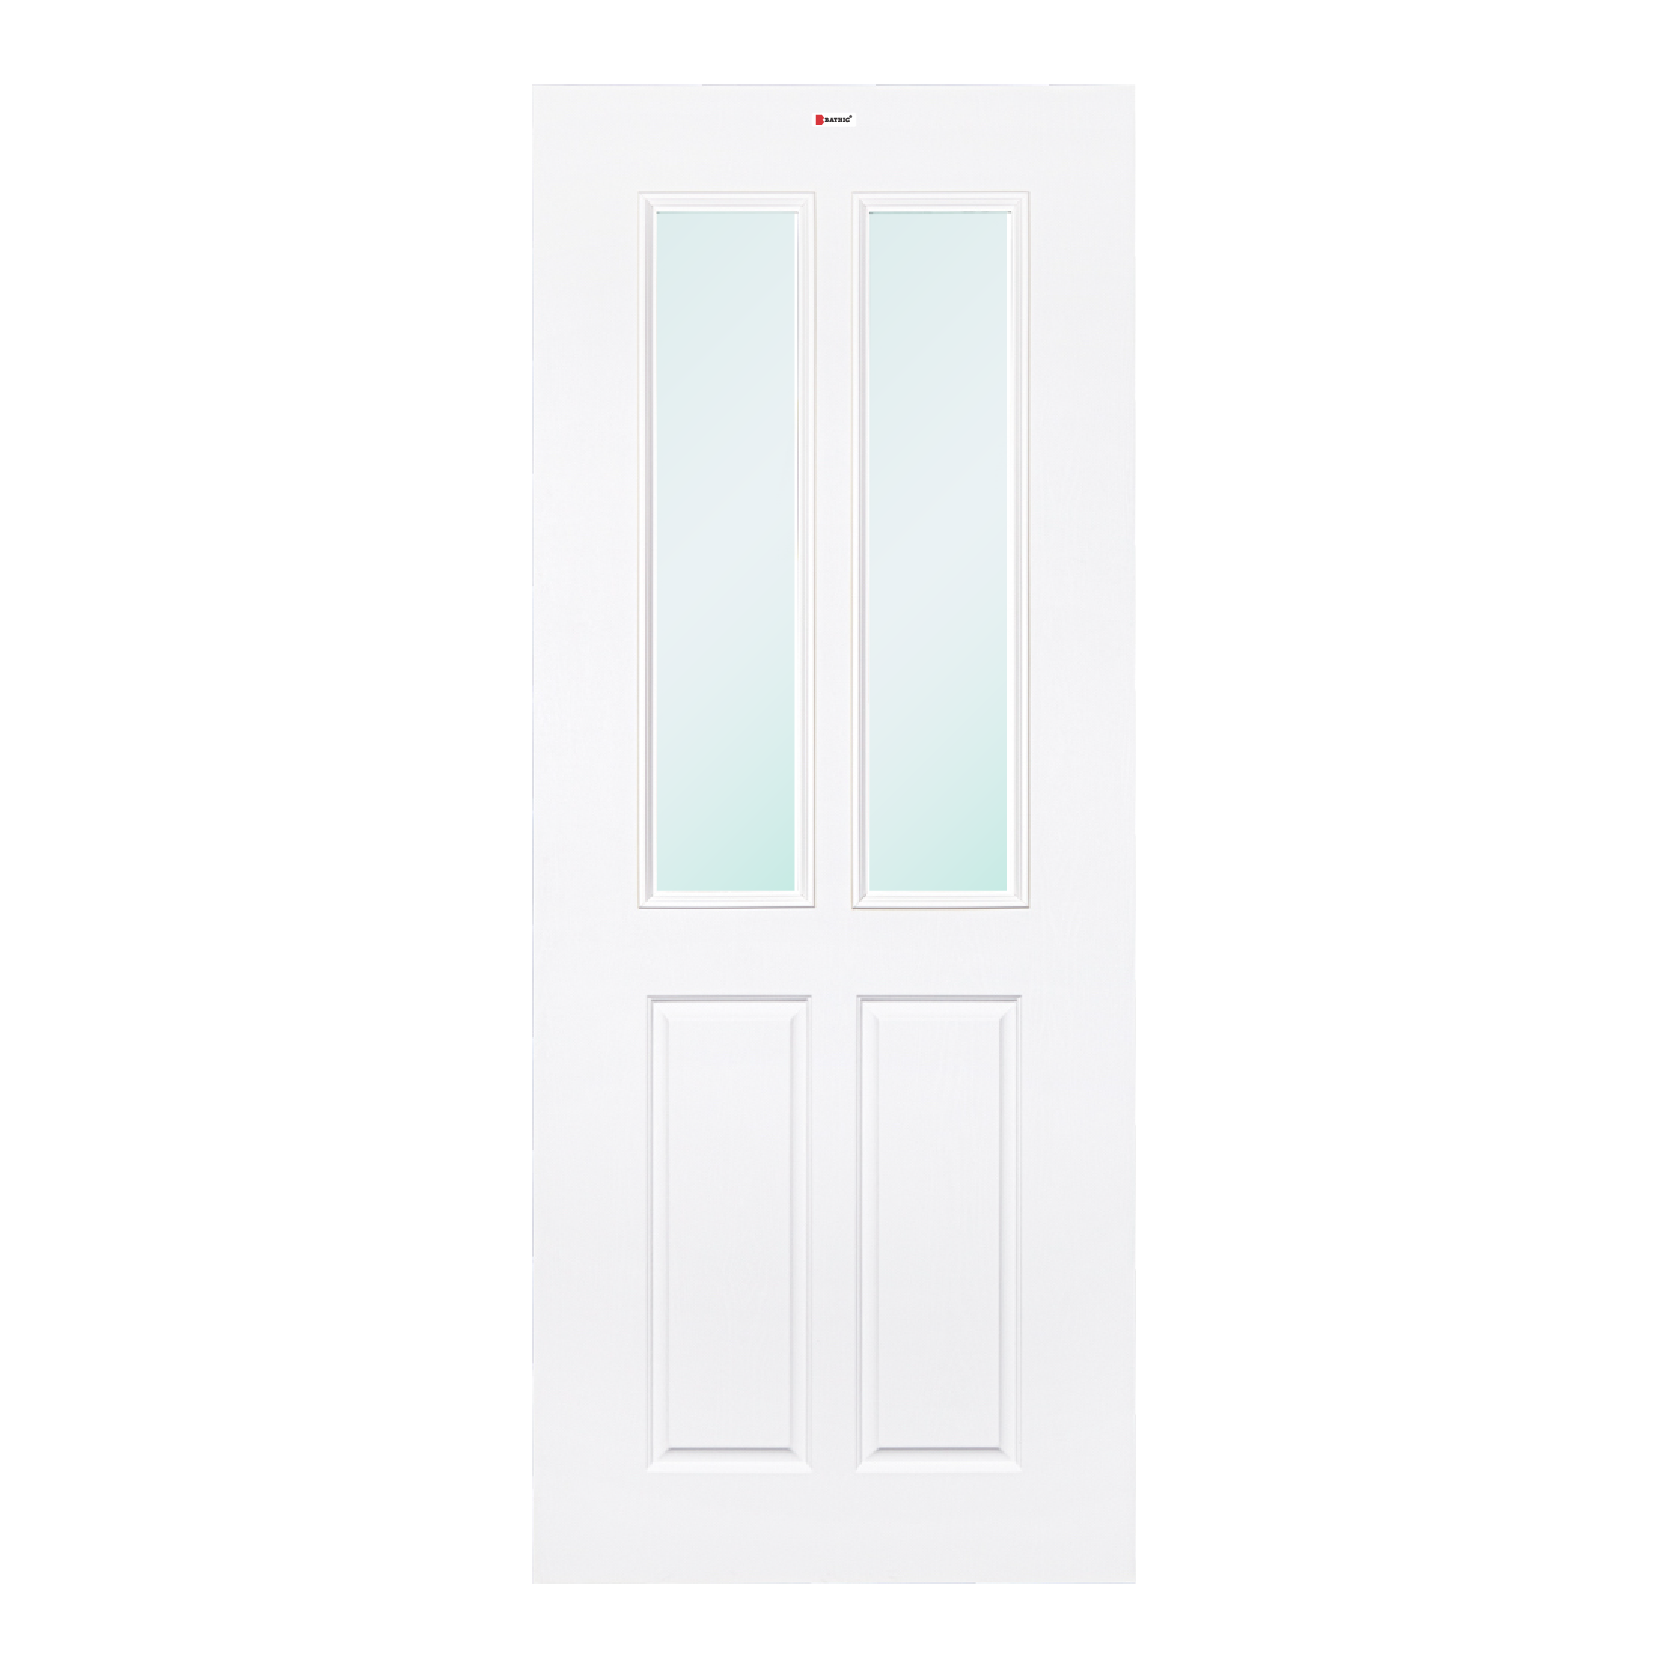 door-upvc-bathic-btg205-white-1